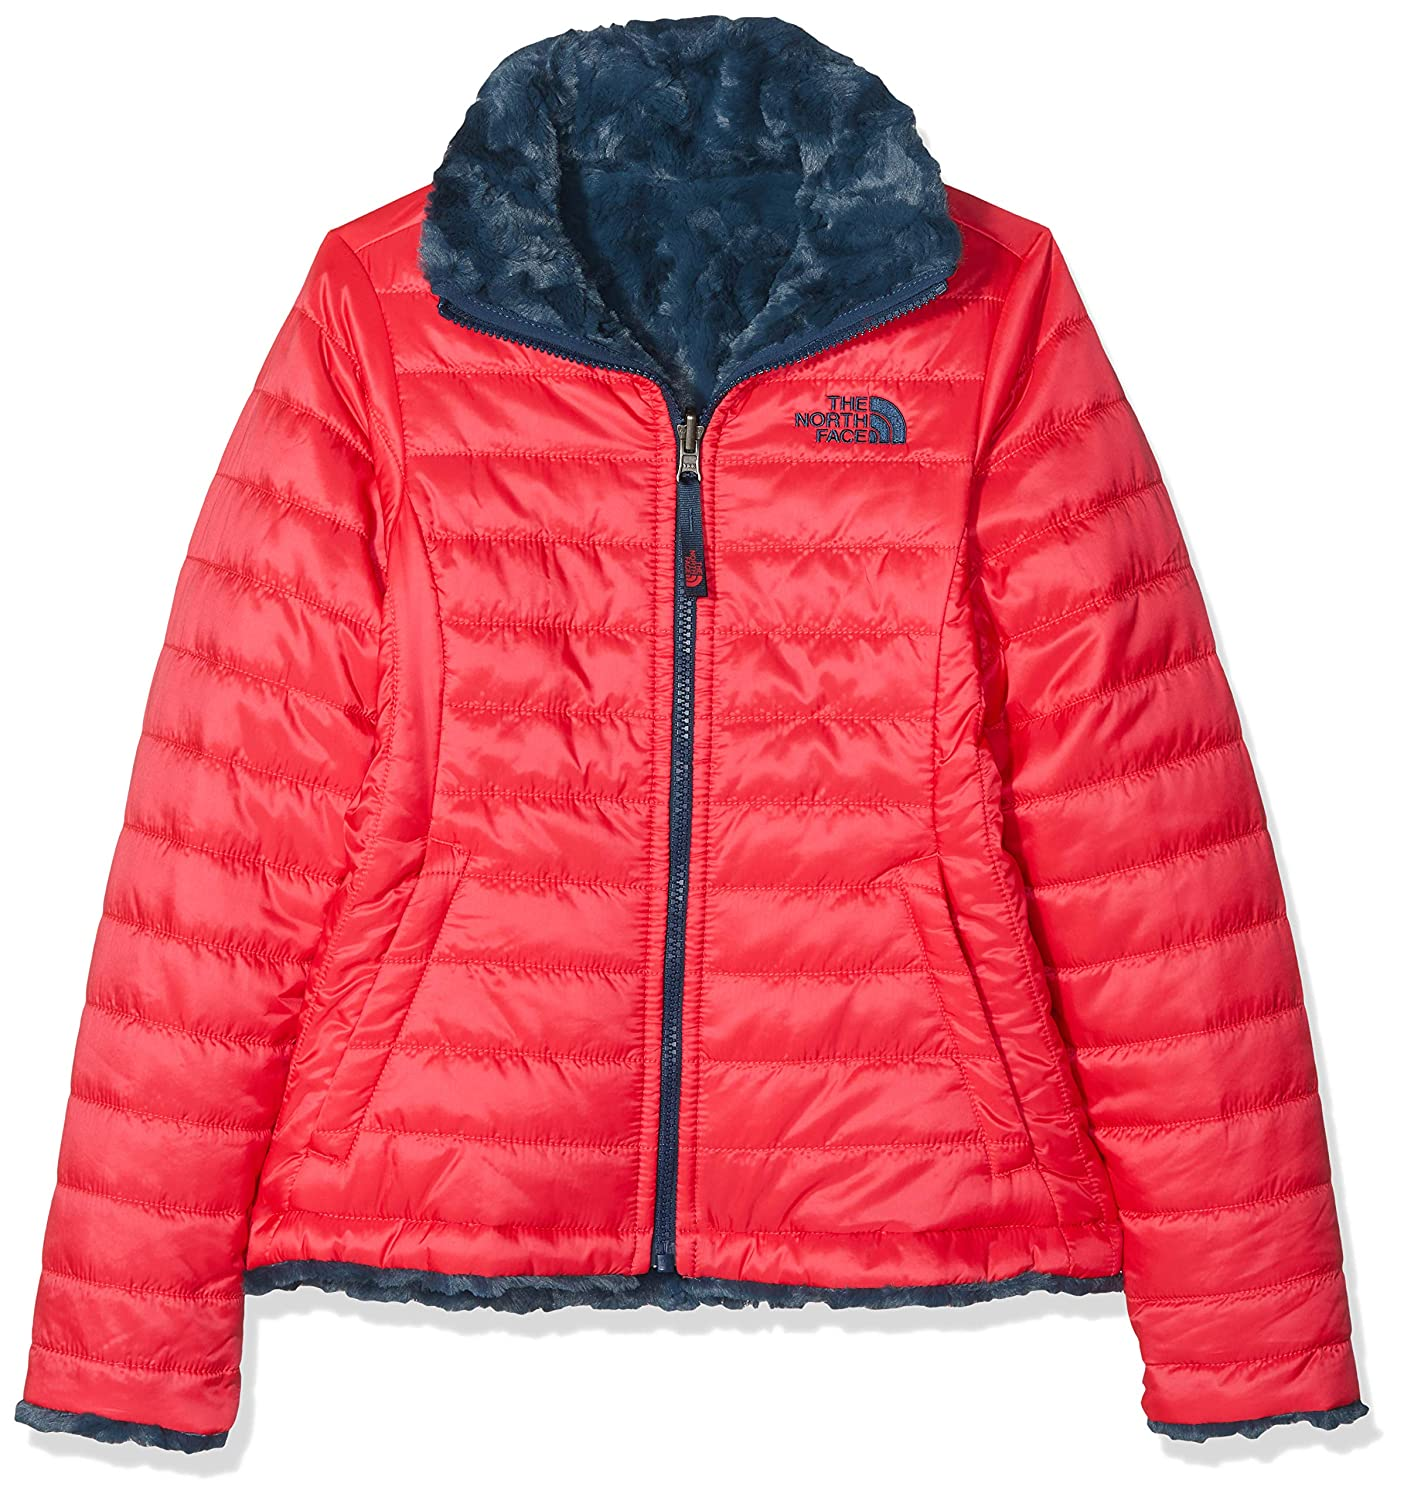 7ae4fd9f0 THE NORTH FACE Children's Reversible Mossbud Swirl Jacket: Amazon.co ...